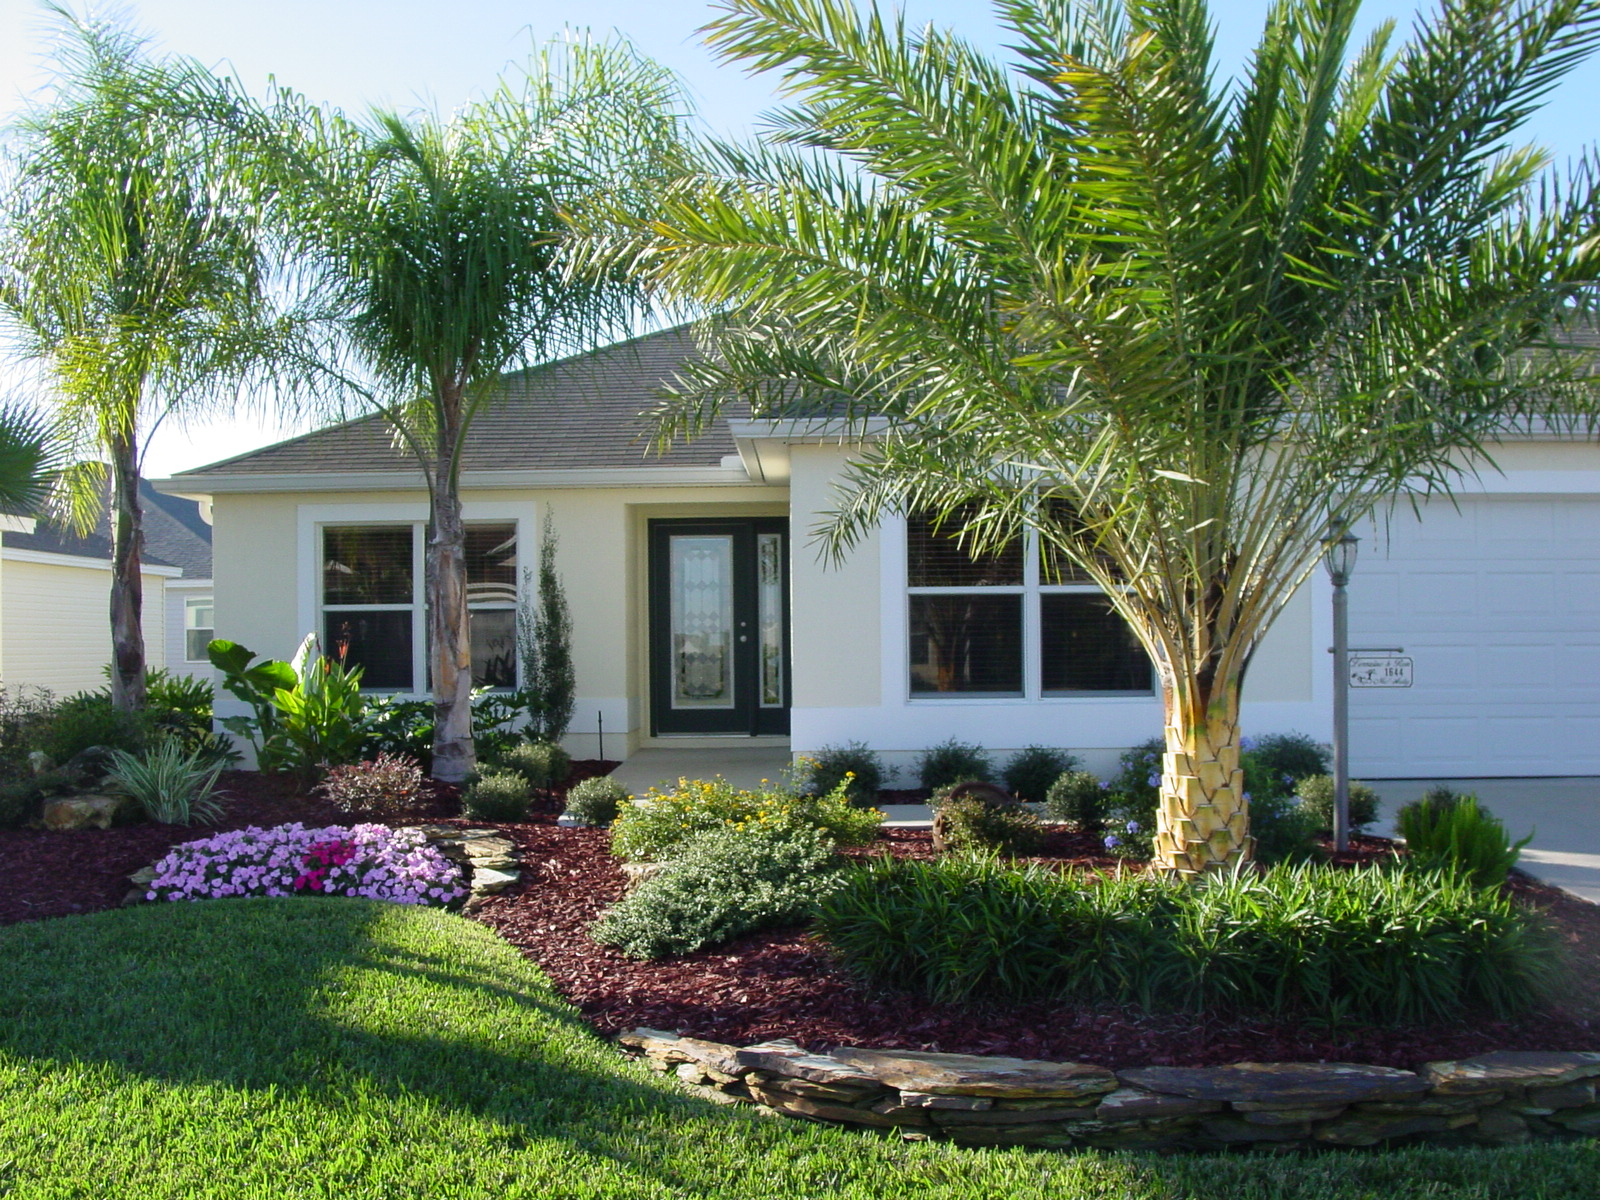 Florida garden landscape ideas photograph rons landscaping for Best house garden design